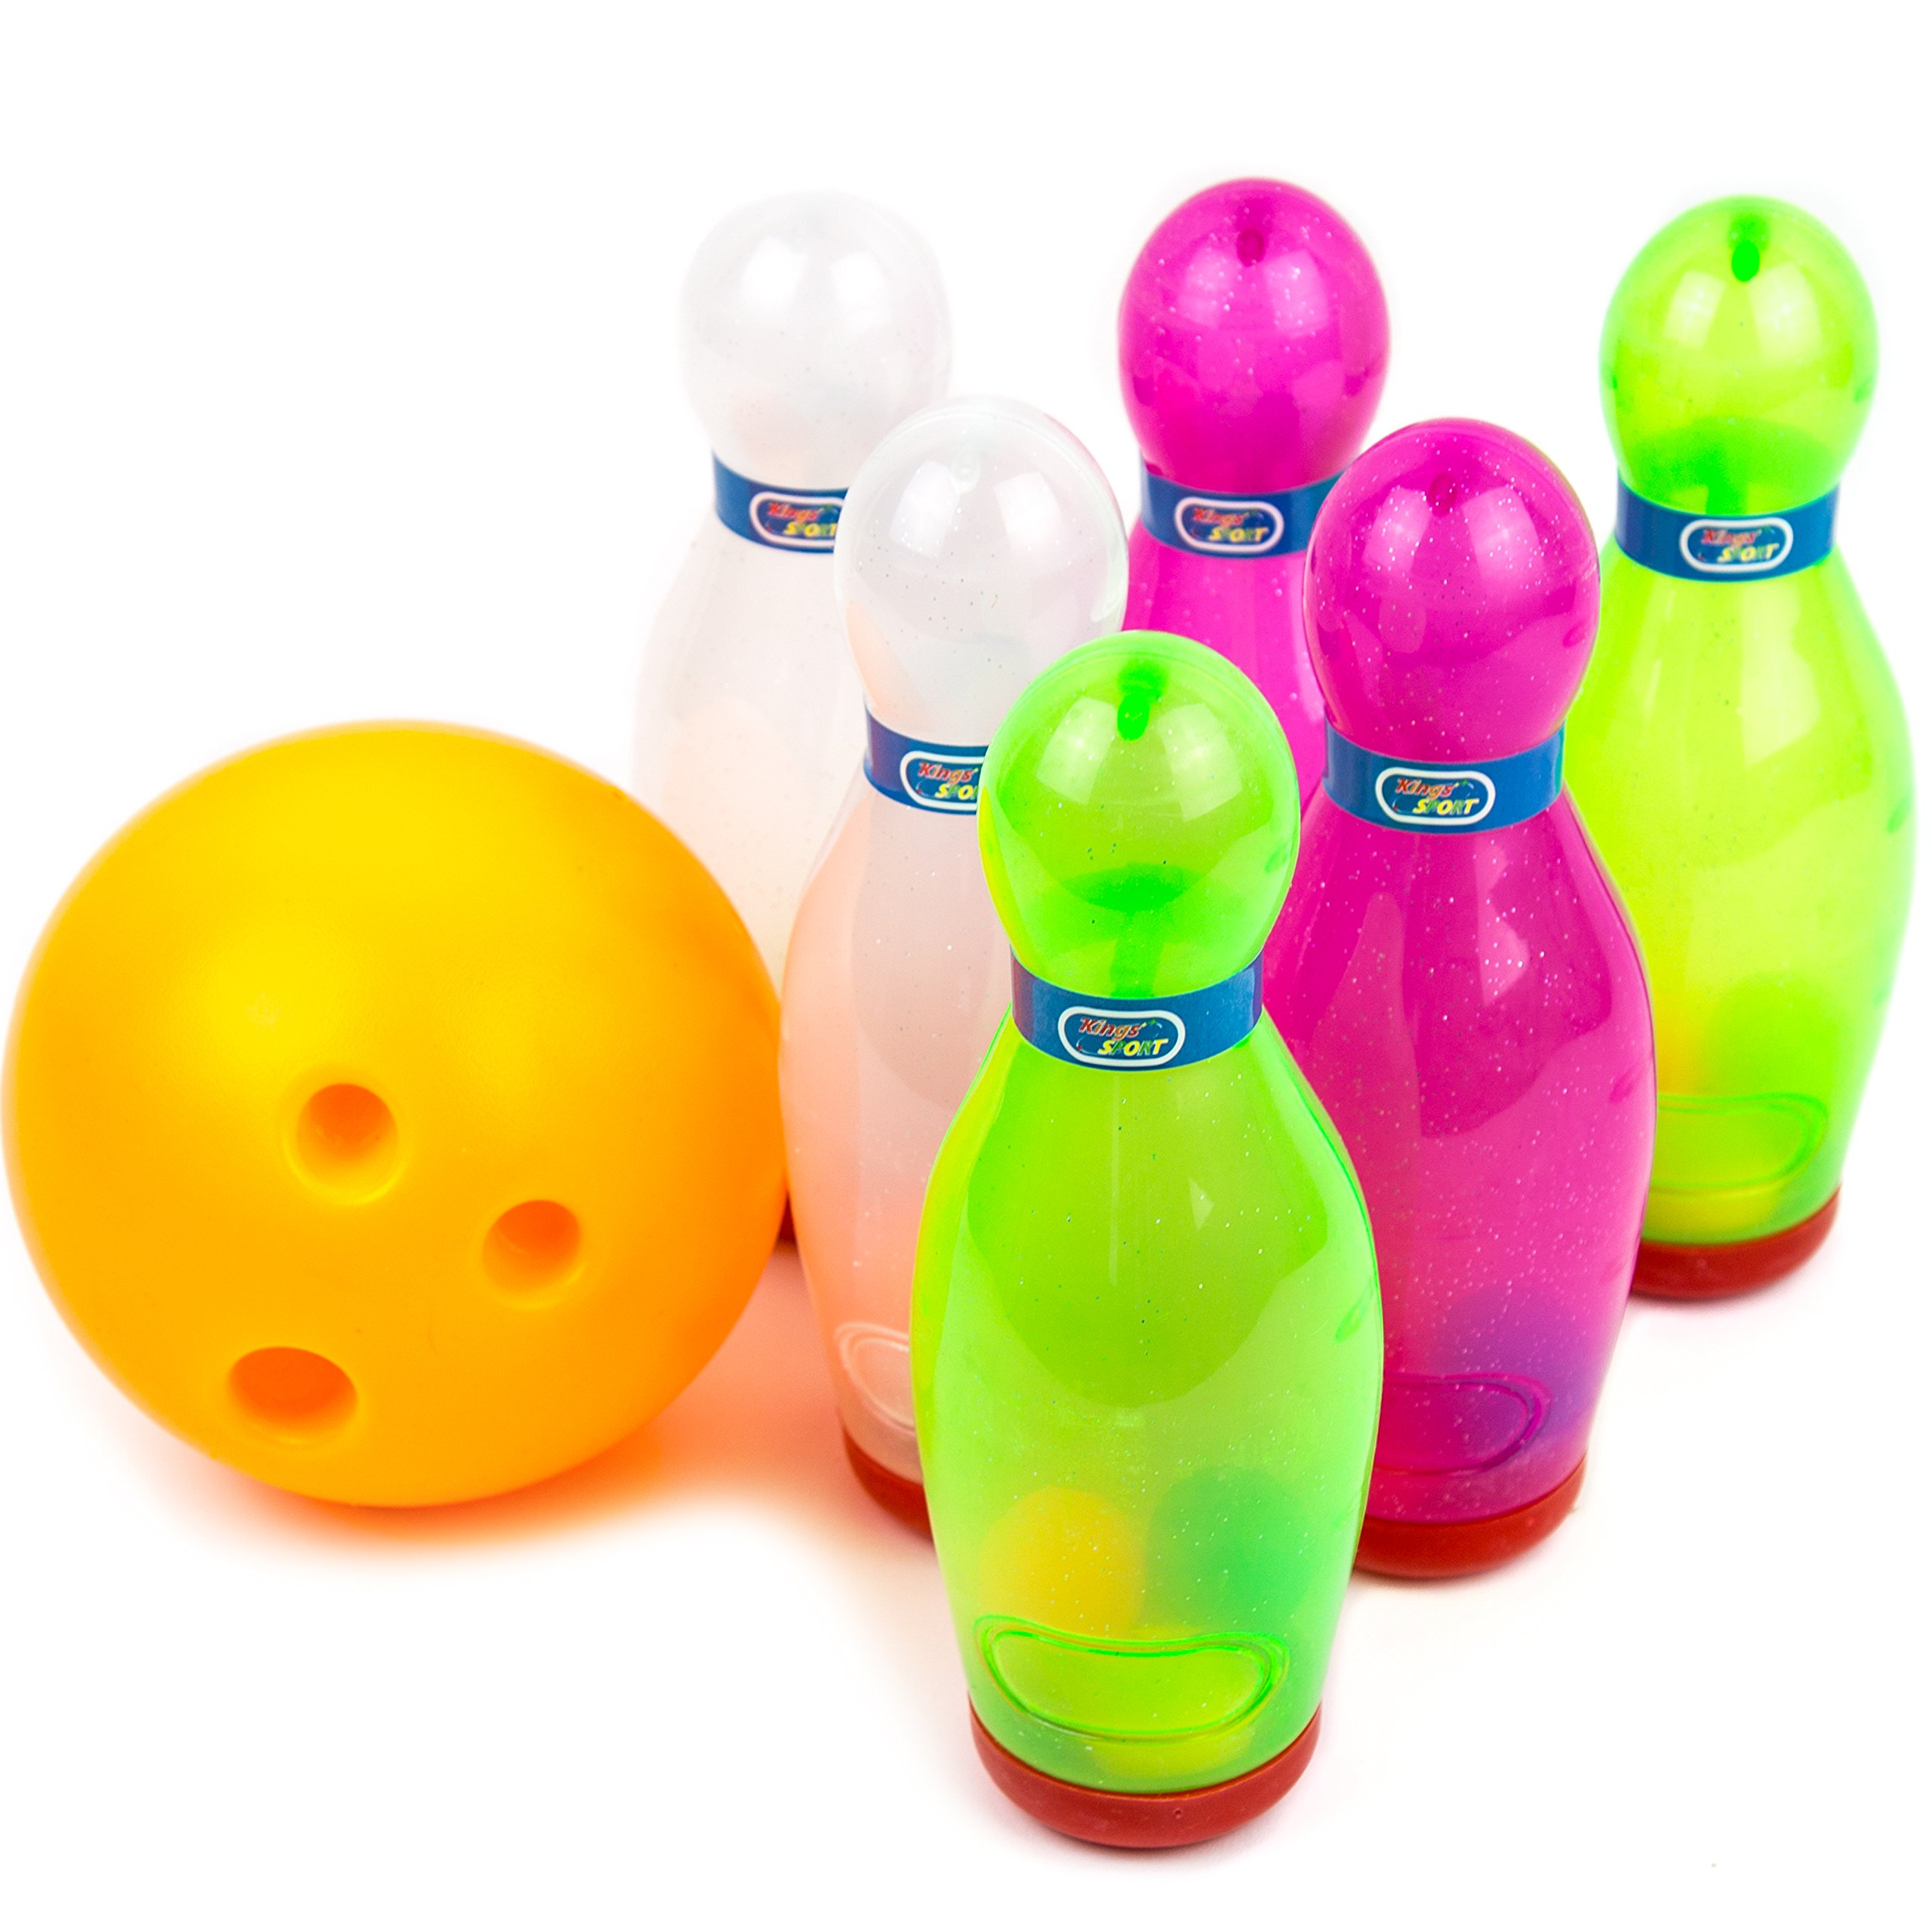 Toysery Bowling Game Set - Inflatable Bowling Ball Set for Kids - Outdoor & Indoor Fun for Children And Adults- Includes 1 Ball & 6 Pins